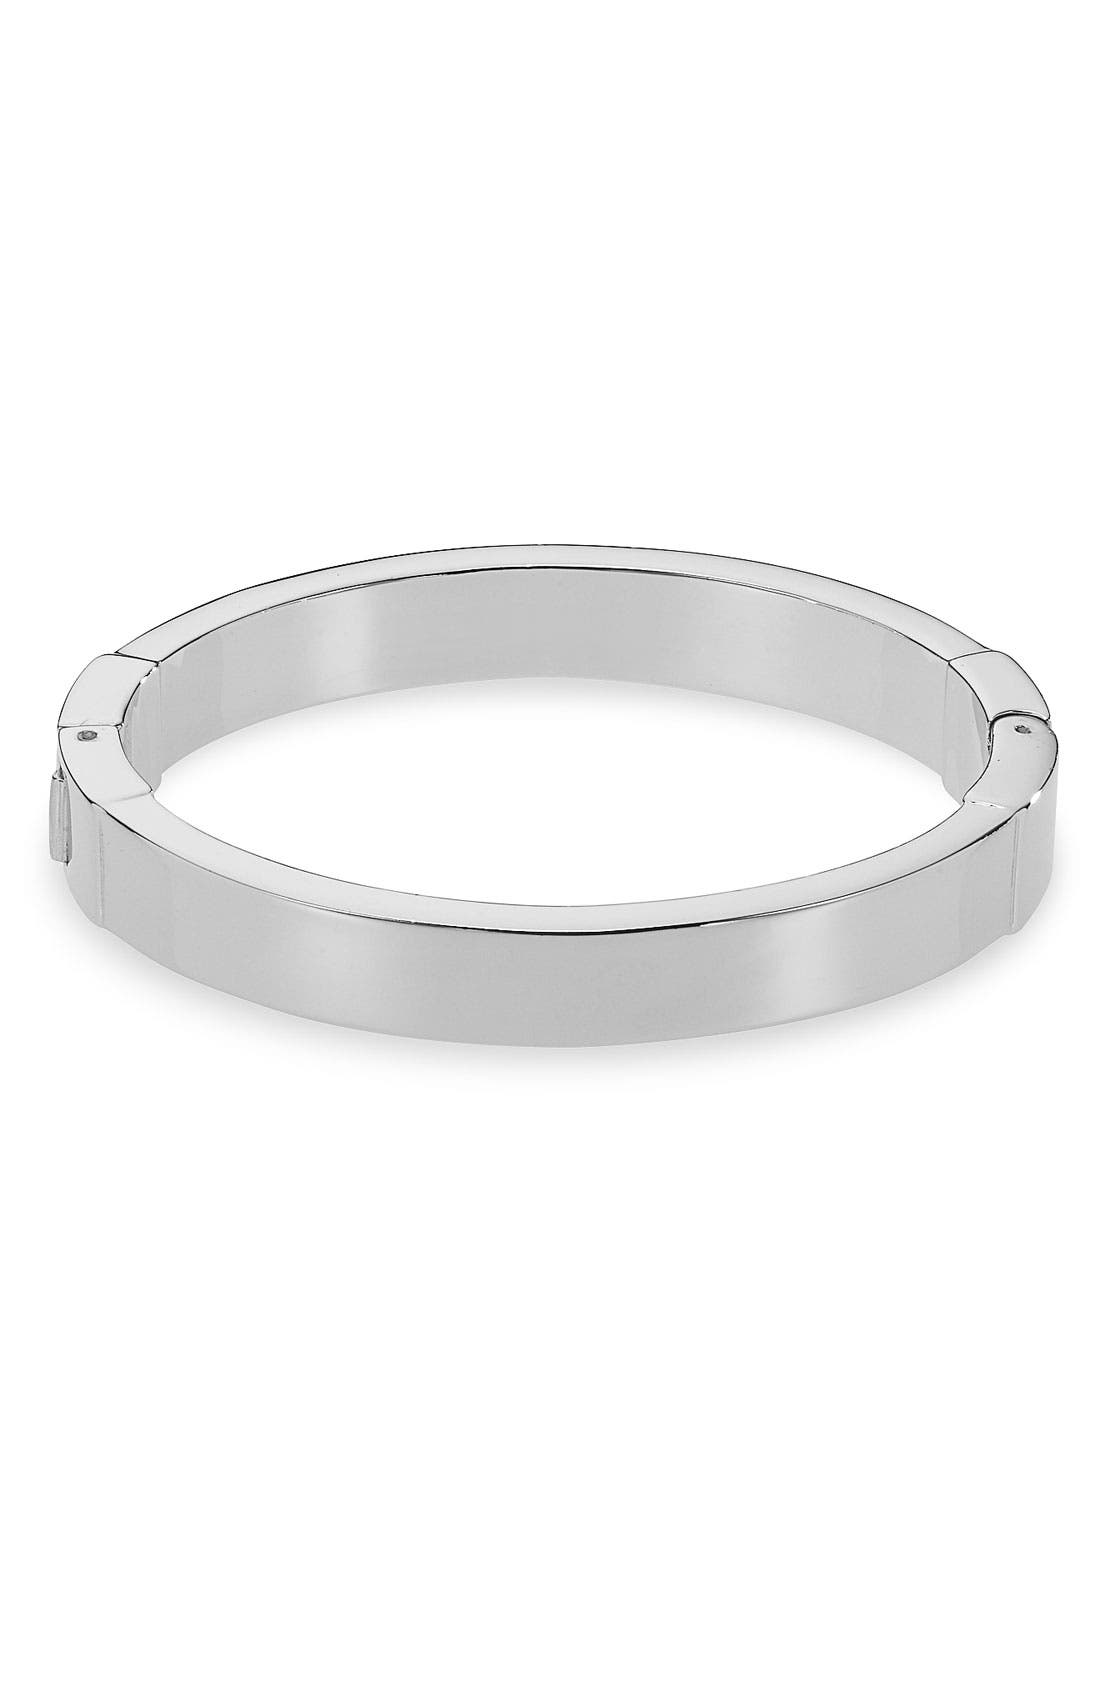 Michael Kors Hinged Bangle,                             Main thumbnail 1, color,                             040